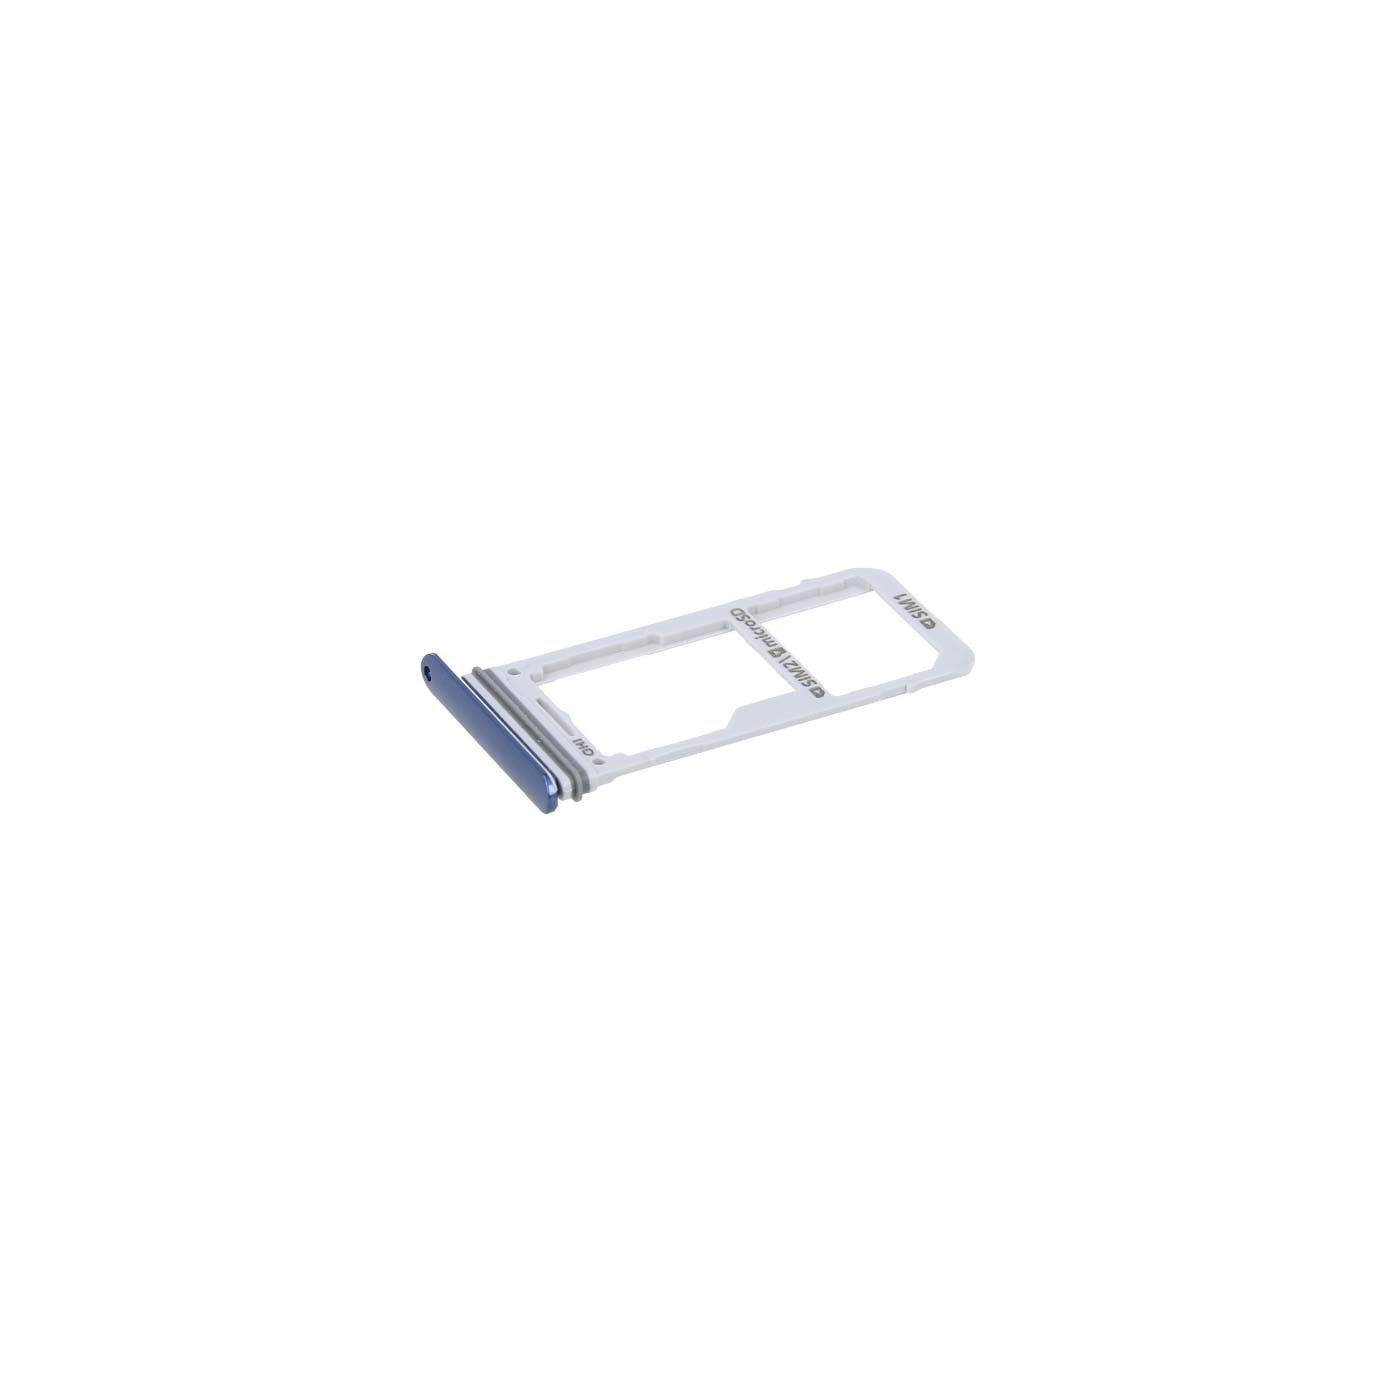 Puerto SIM dual para Galaxy Note 8 N950F Blue Slot Sled